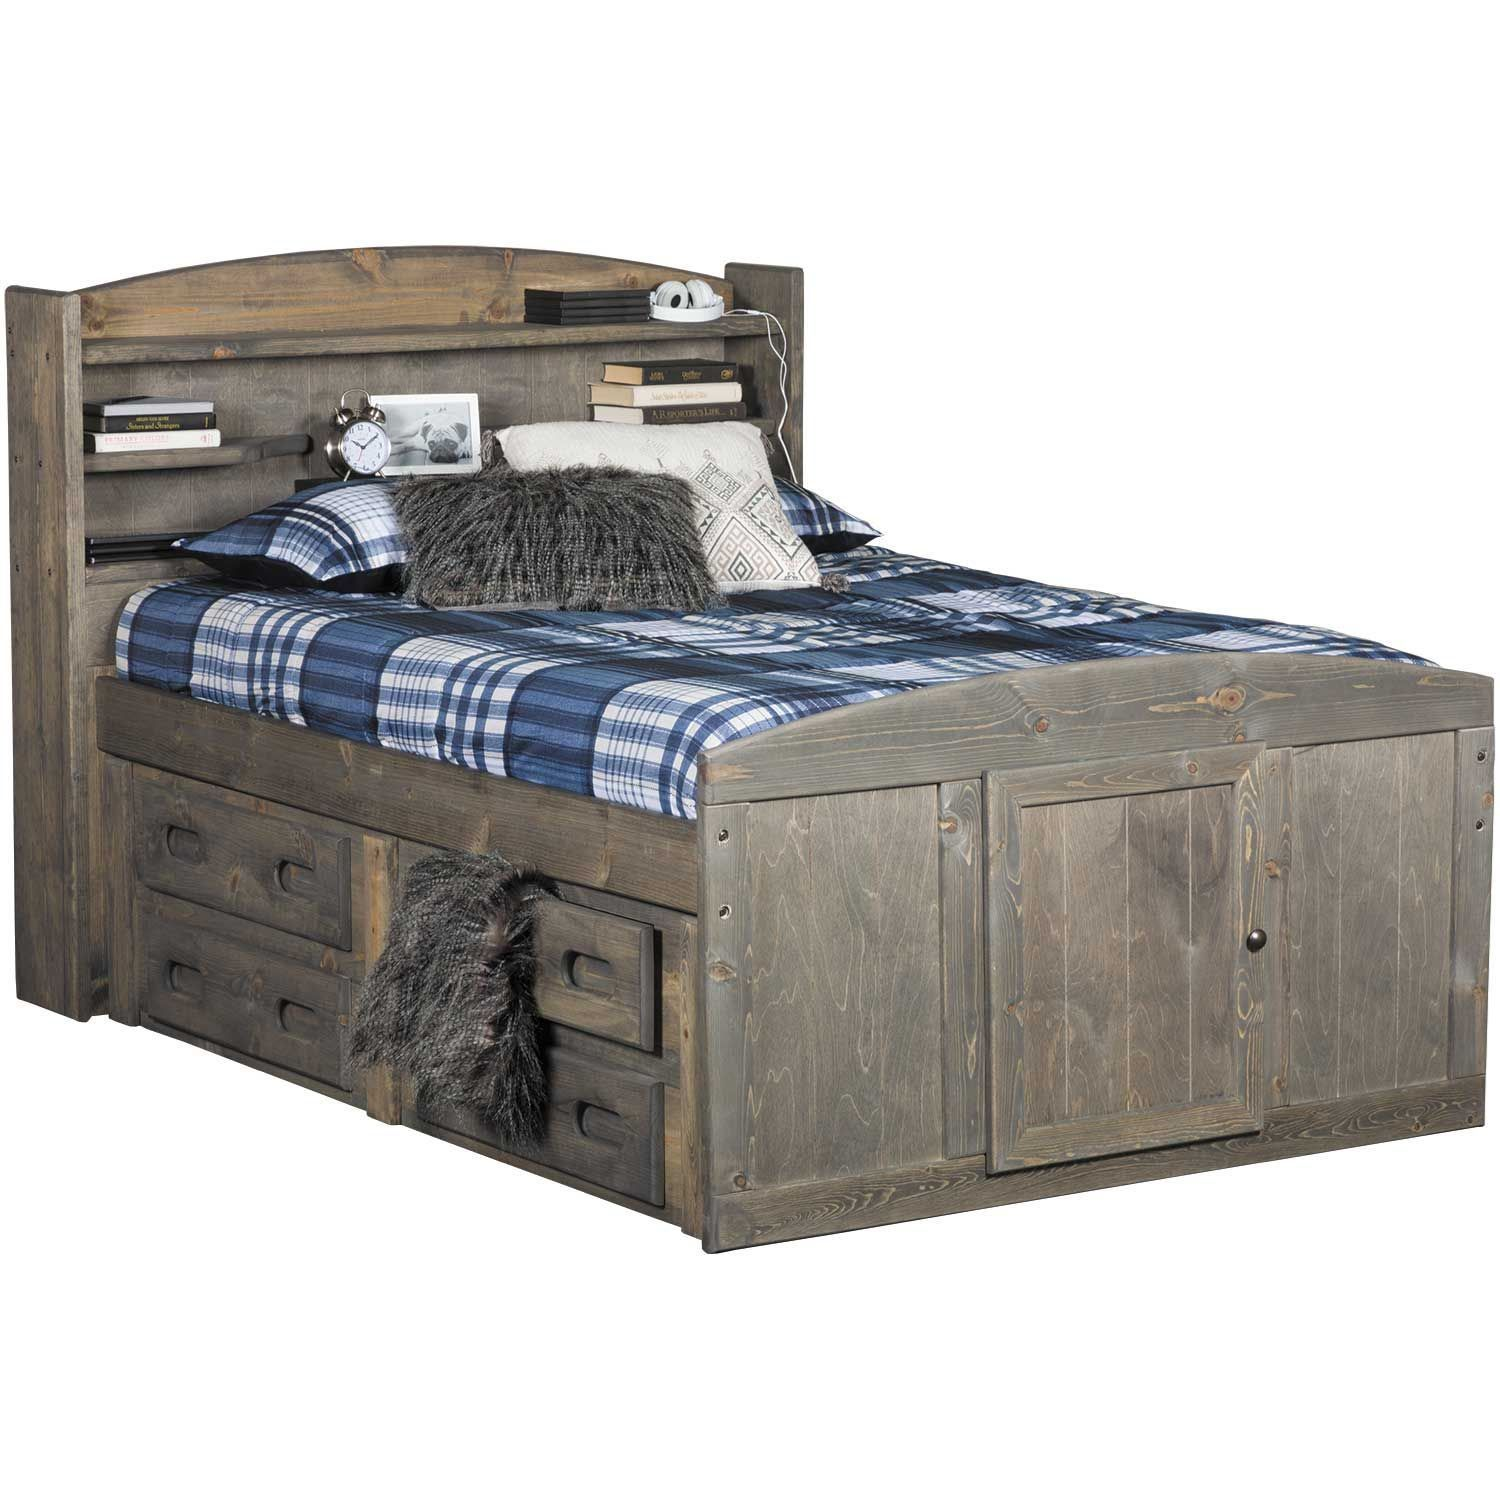 Cheyenne Driftwood Full Captain S Bed With Two Underbed Storage Units Captains Bed Under Bed Storage Bed Frame With Storage